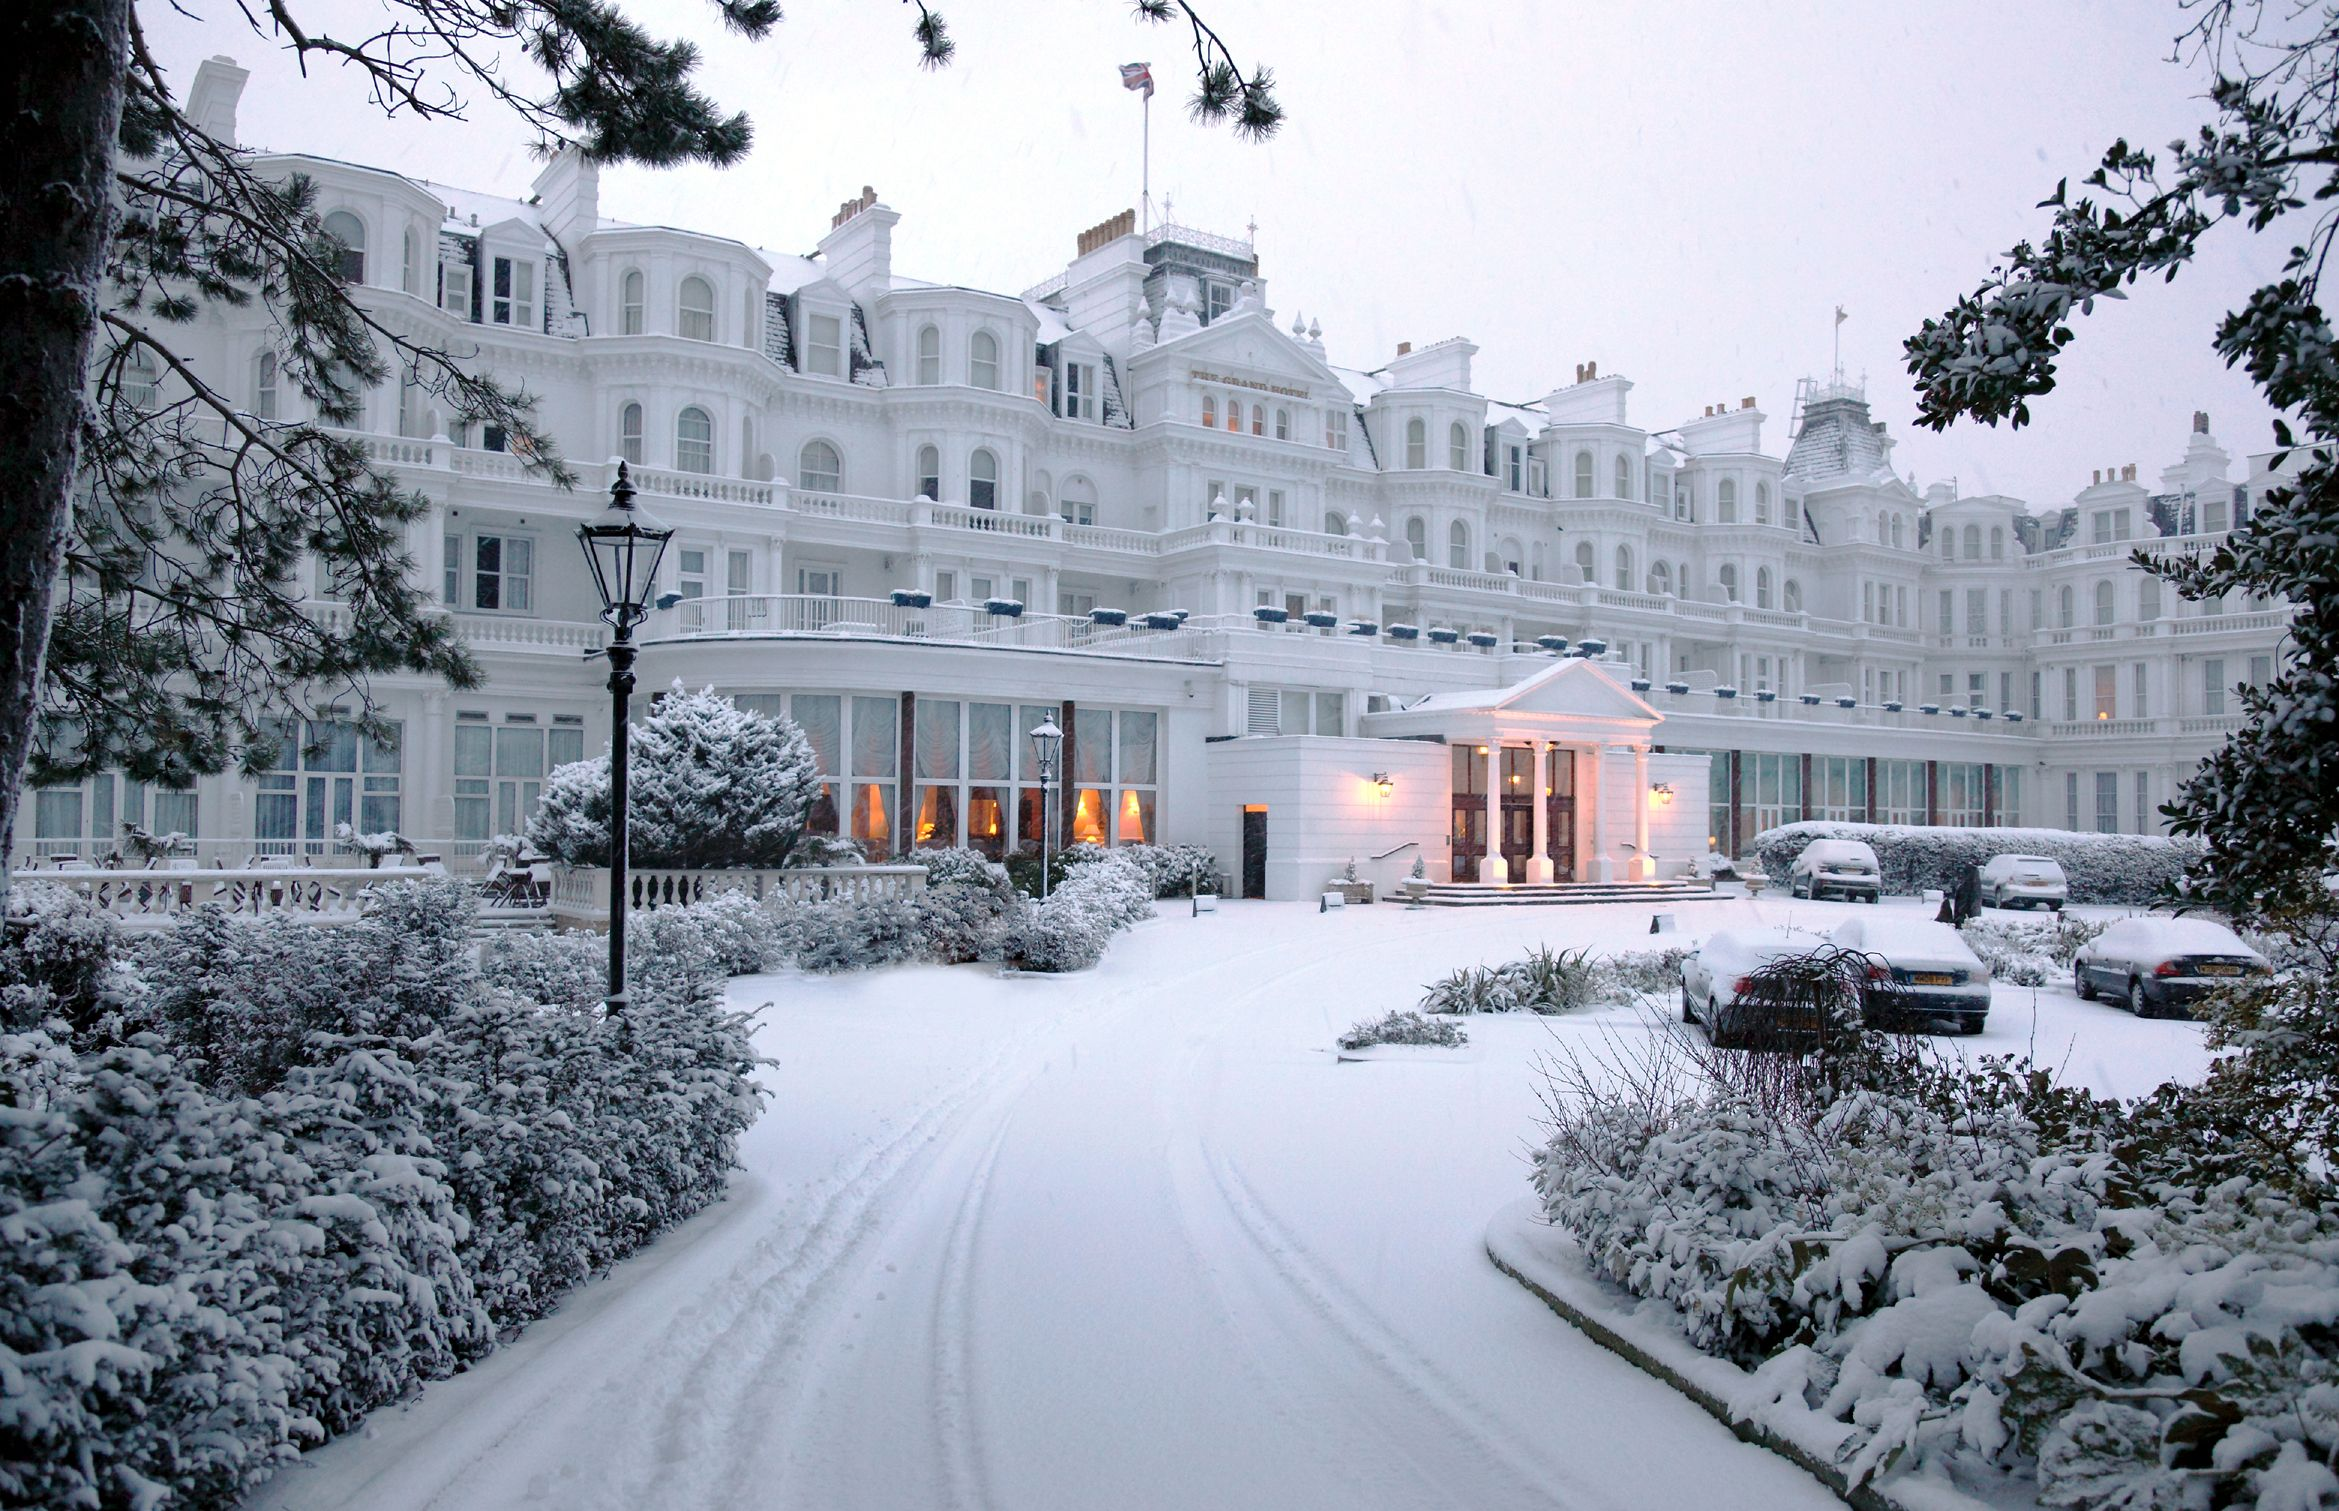 Winter at The Grand Hotel #Eastbourne #Sussex